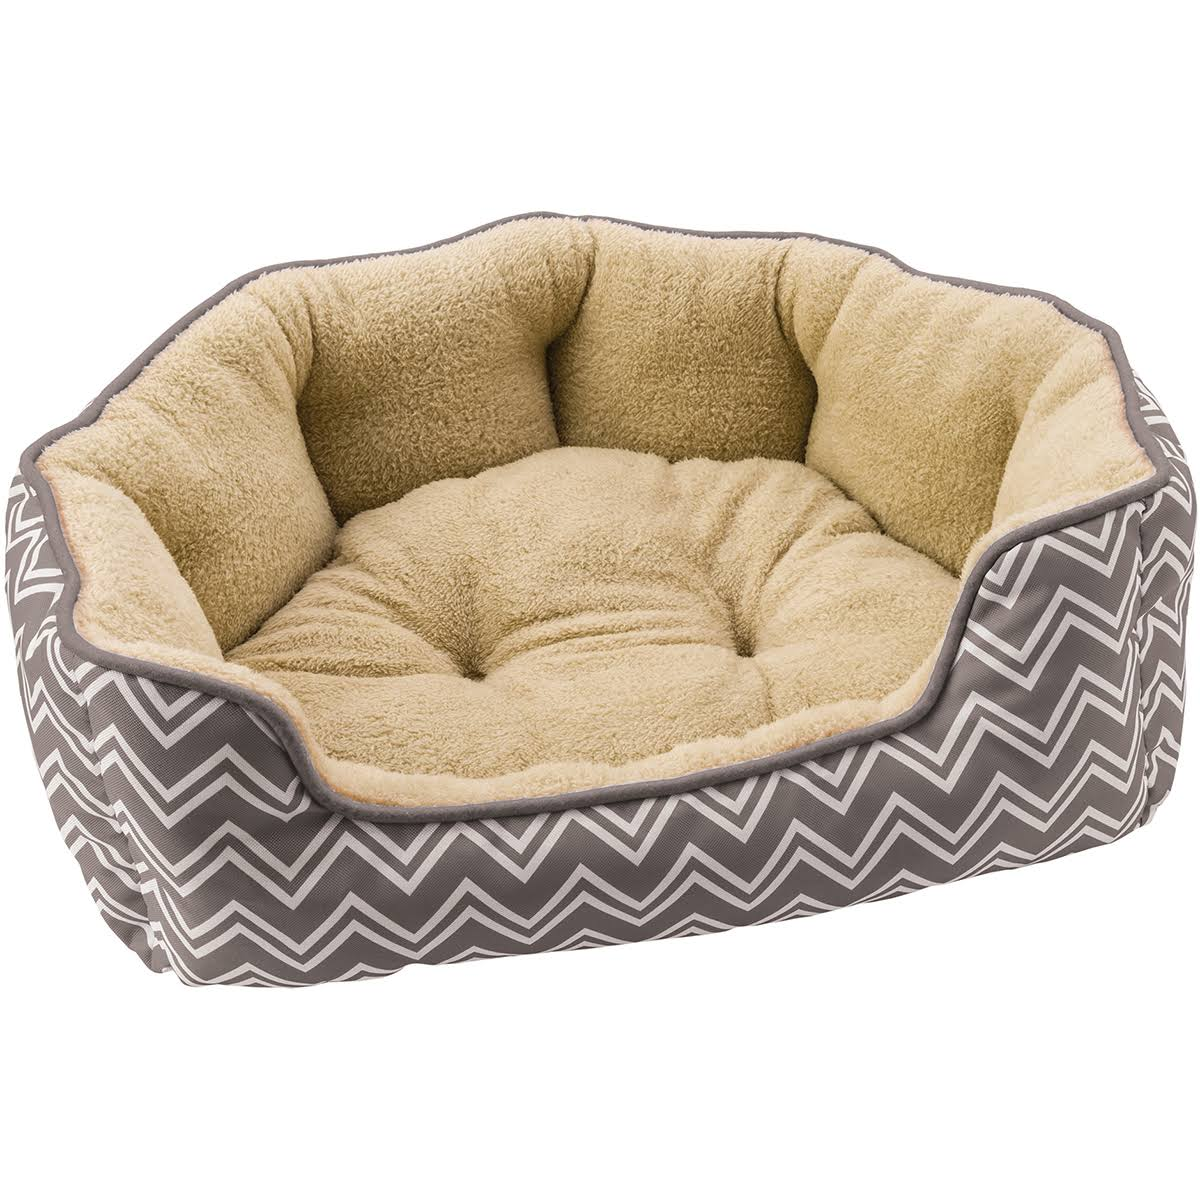 Sleep Zone Cozy Pet Bed - Large, Gray